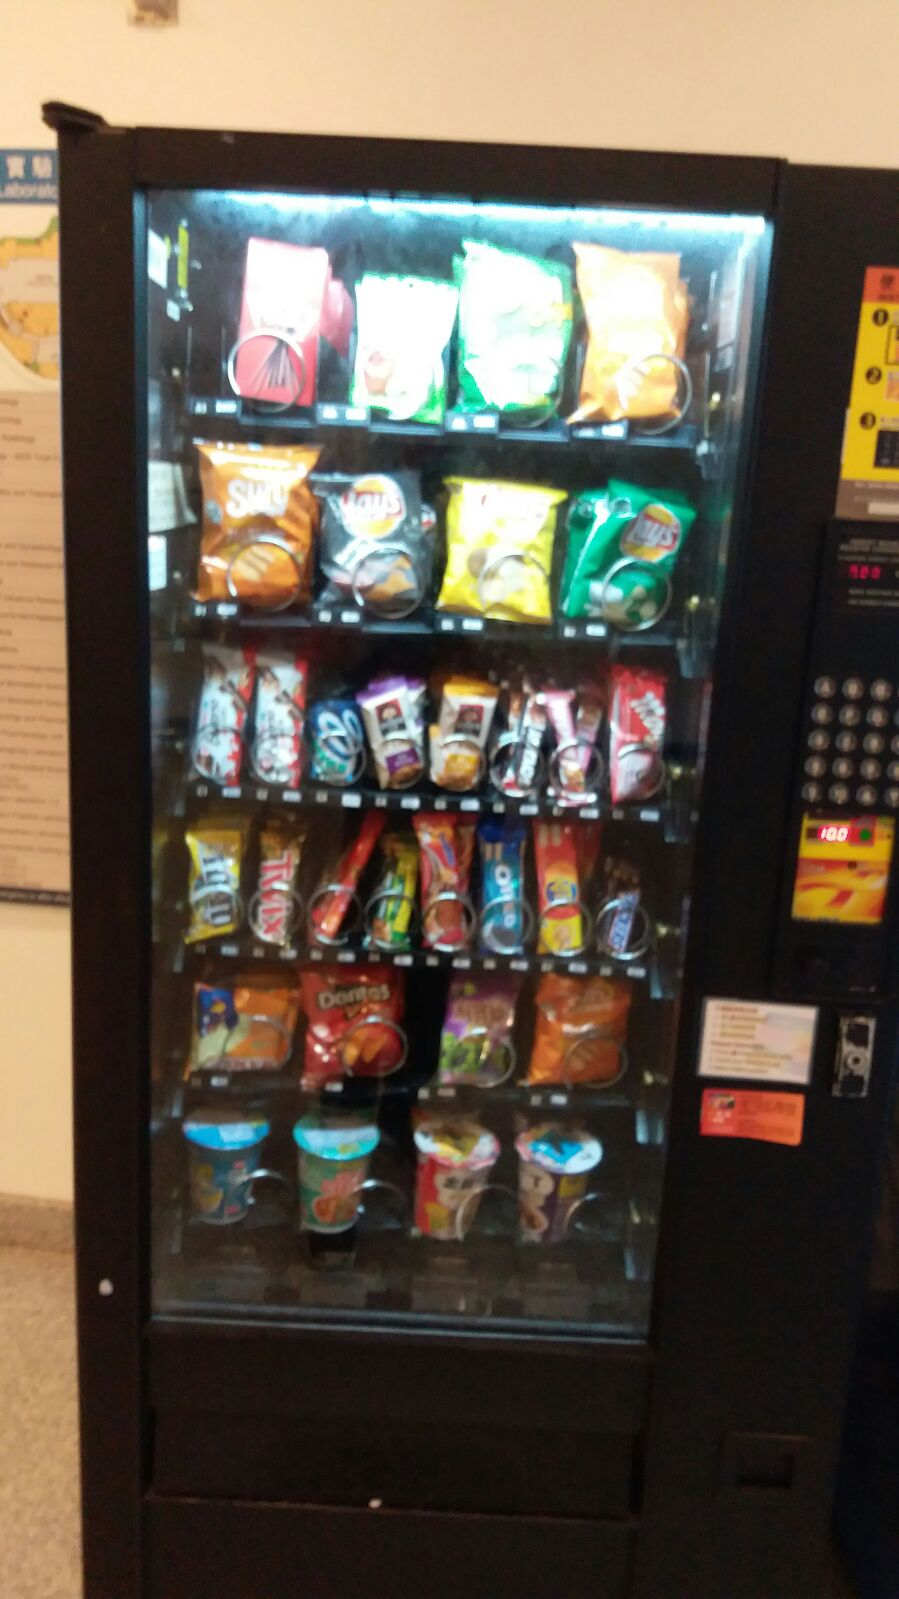 Freshup, vending machine hk, interactive, food, beverage, smart retail, convenient, vending services, professional, universities, HKU